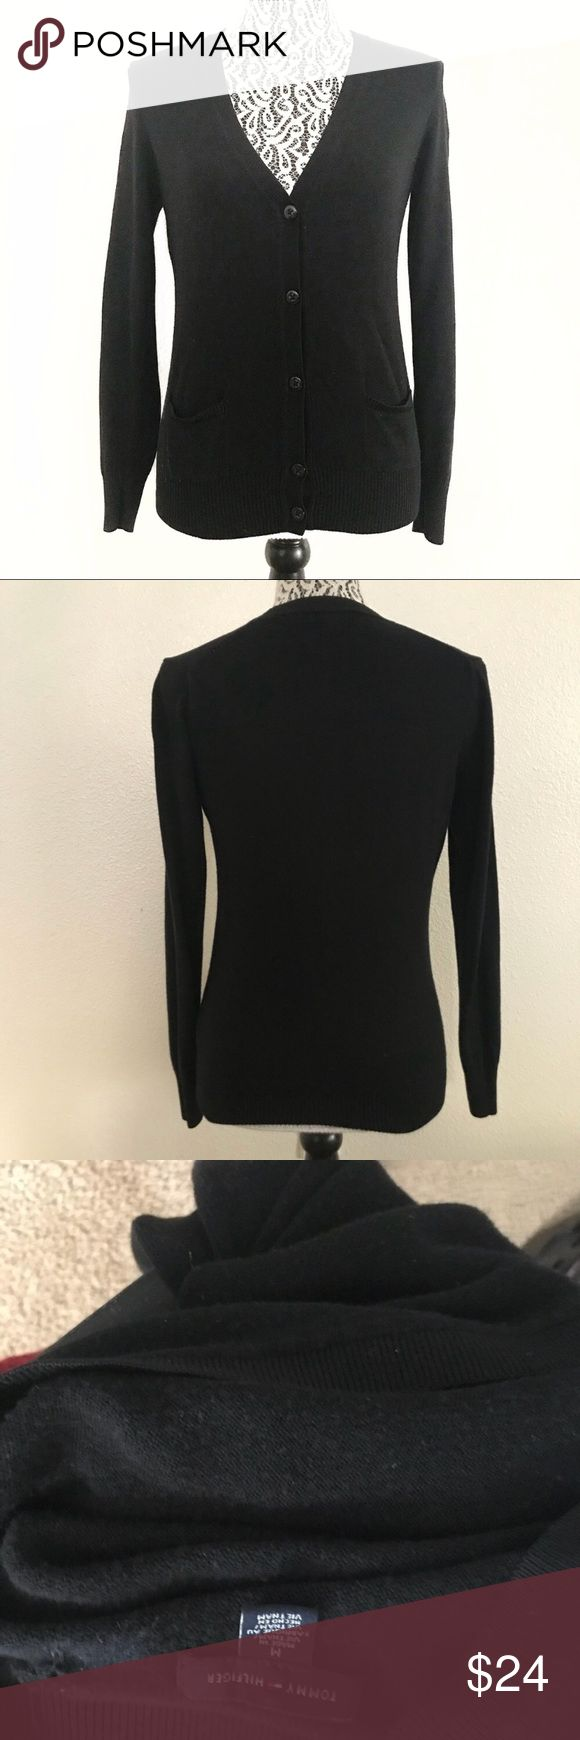 "Tommy Hilfiger classic black cardigan medium Pit to pit 18"" Sleeve 22"" Shoulder 13"" Length 22"" Tommy Hilfiger Sweaters Cardigans"